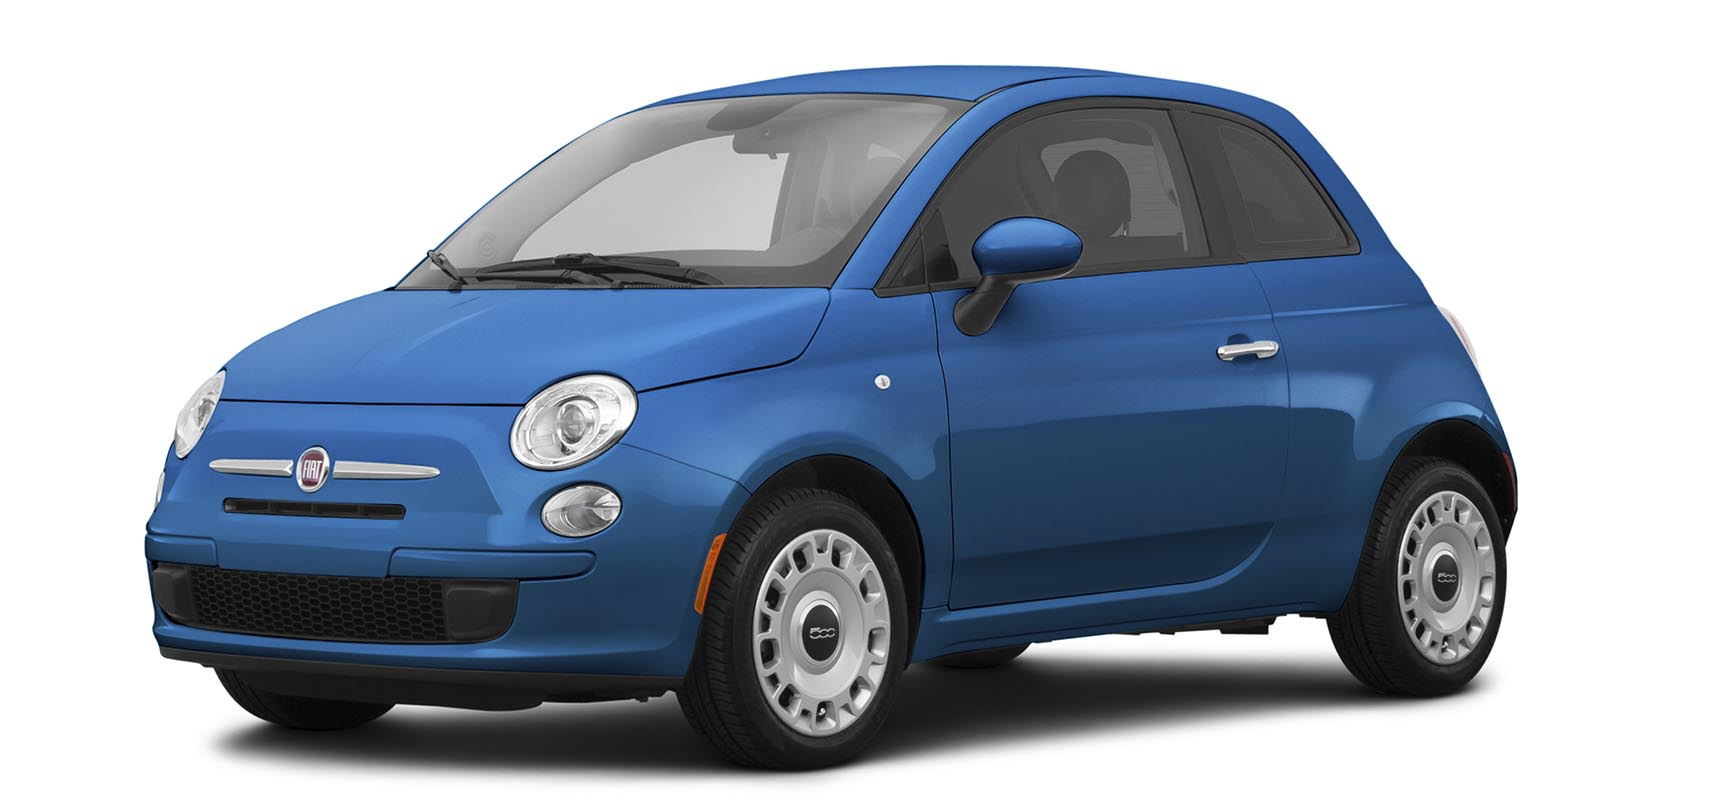 Fiat Service By Top Rated Mechanics - YourMechanic